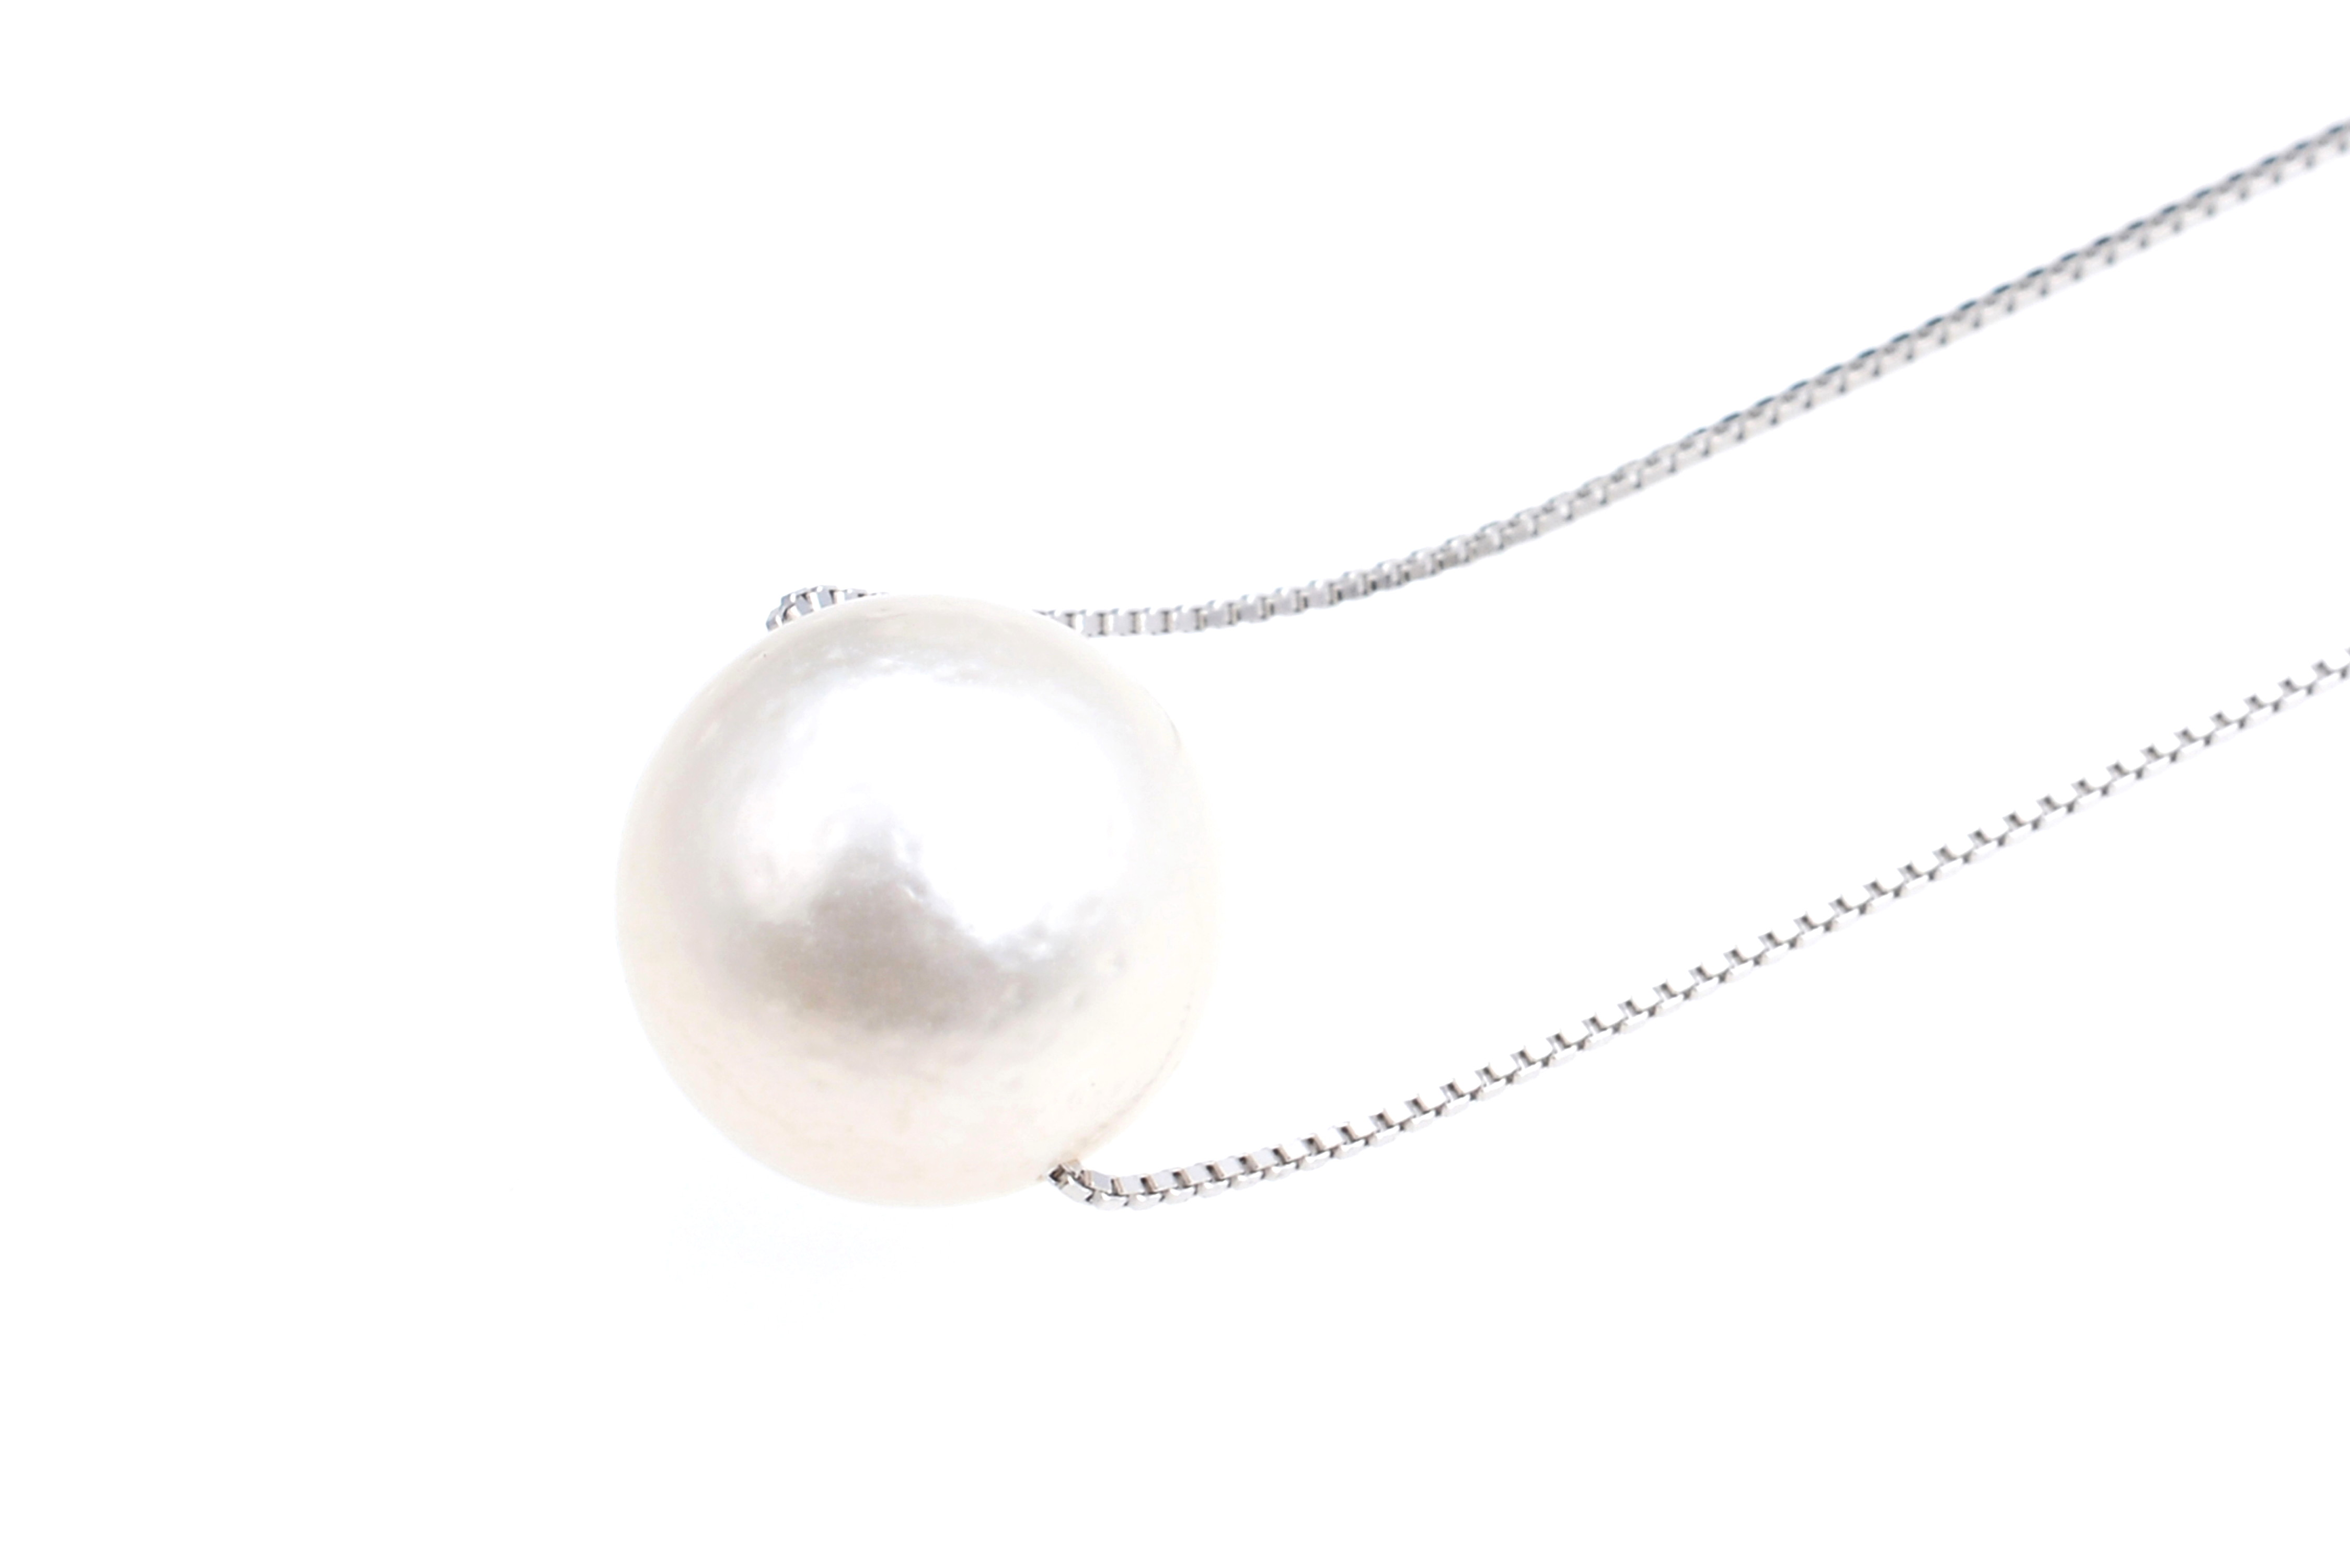 Huge 12 - 13 mm AA- White South Sea Pearl Solitaire Necklace 925 silver chain - nk278